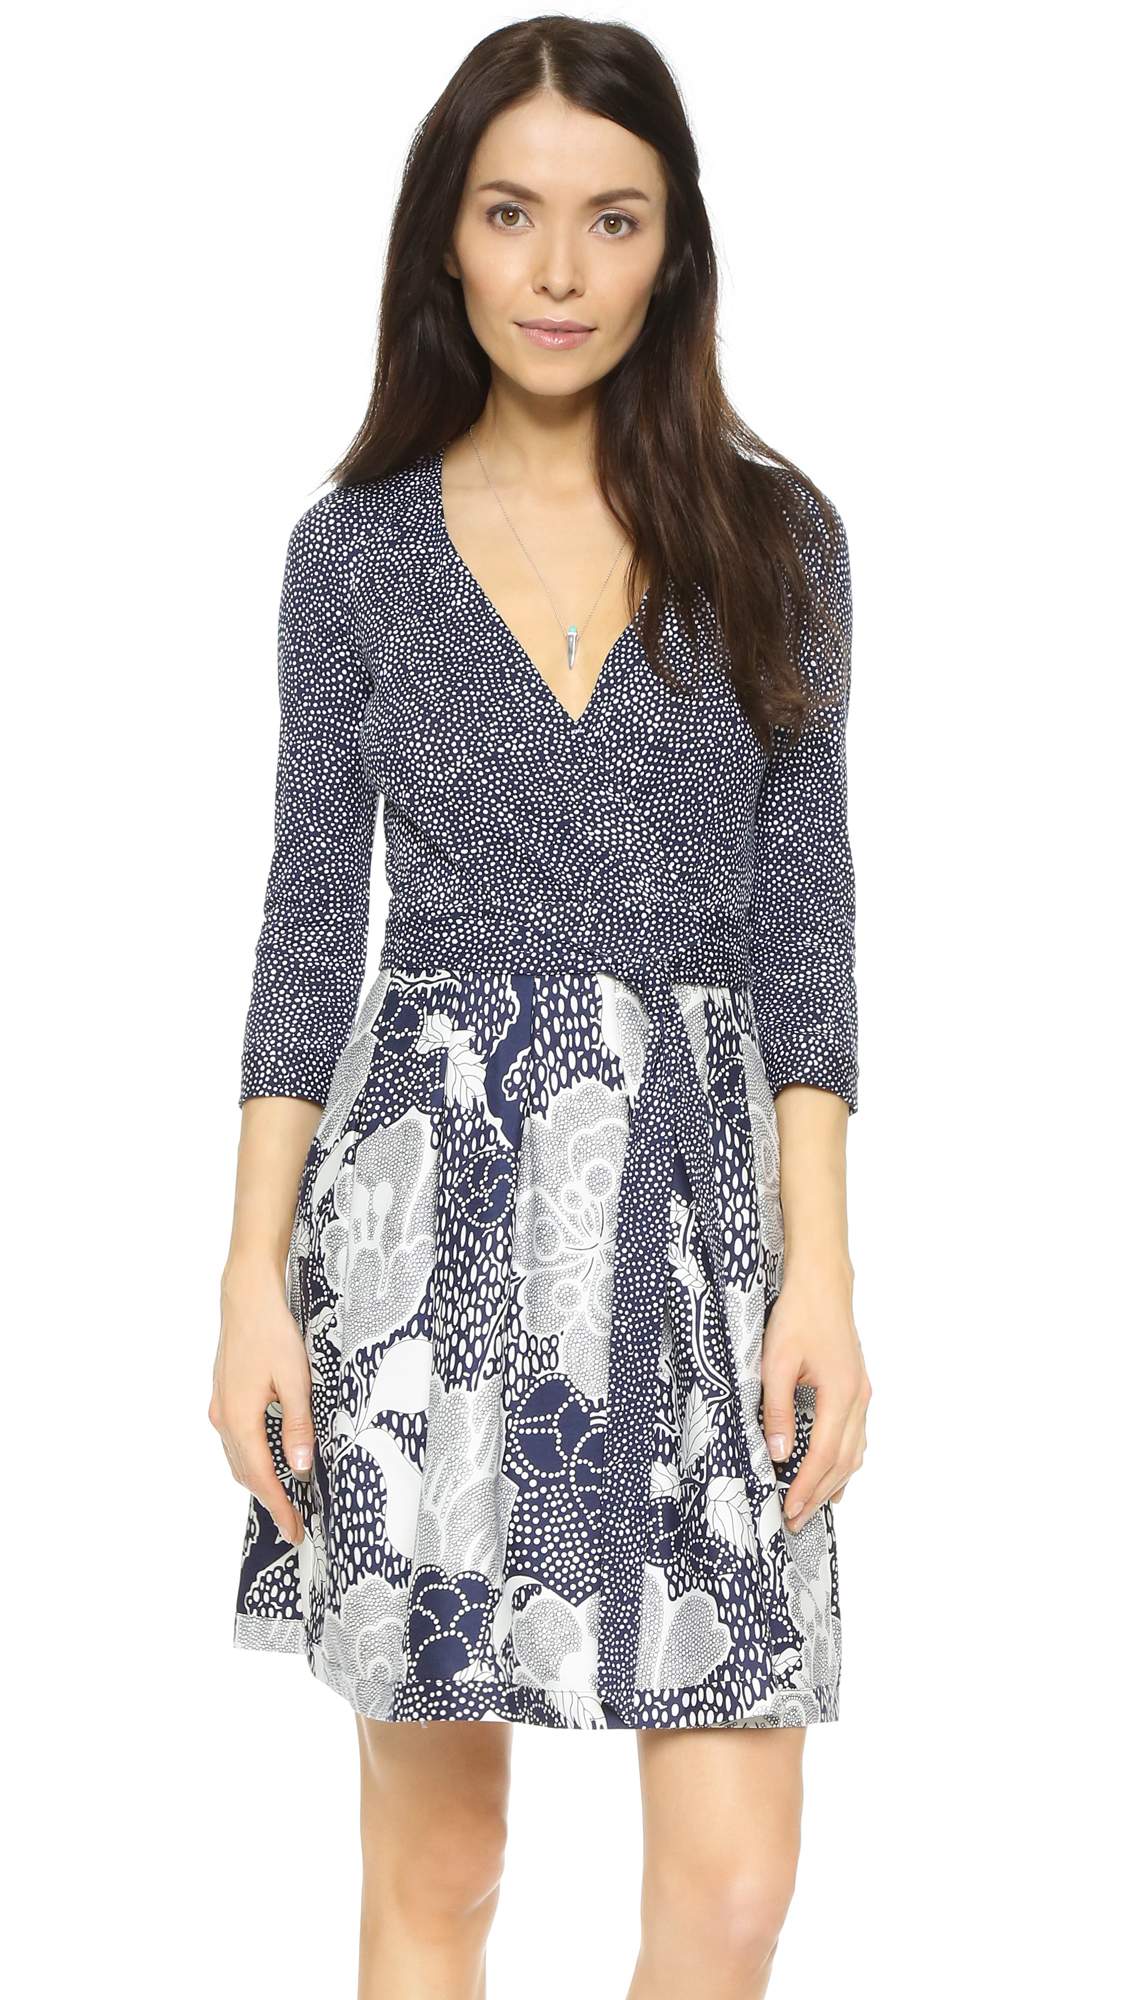 Diane von Furstenberg Wool Jewel Dress in Blue - Lyst